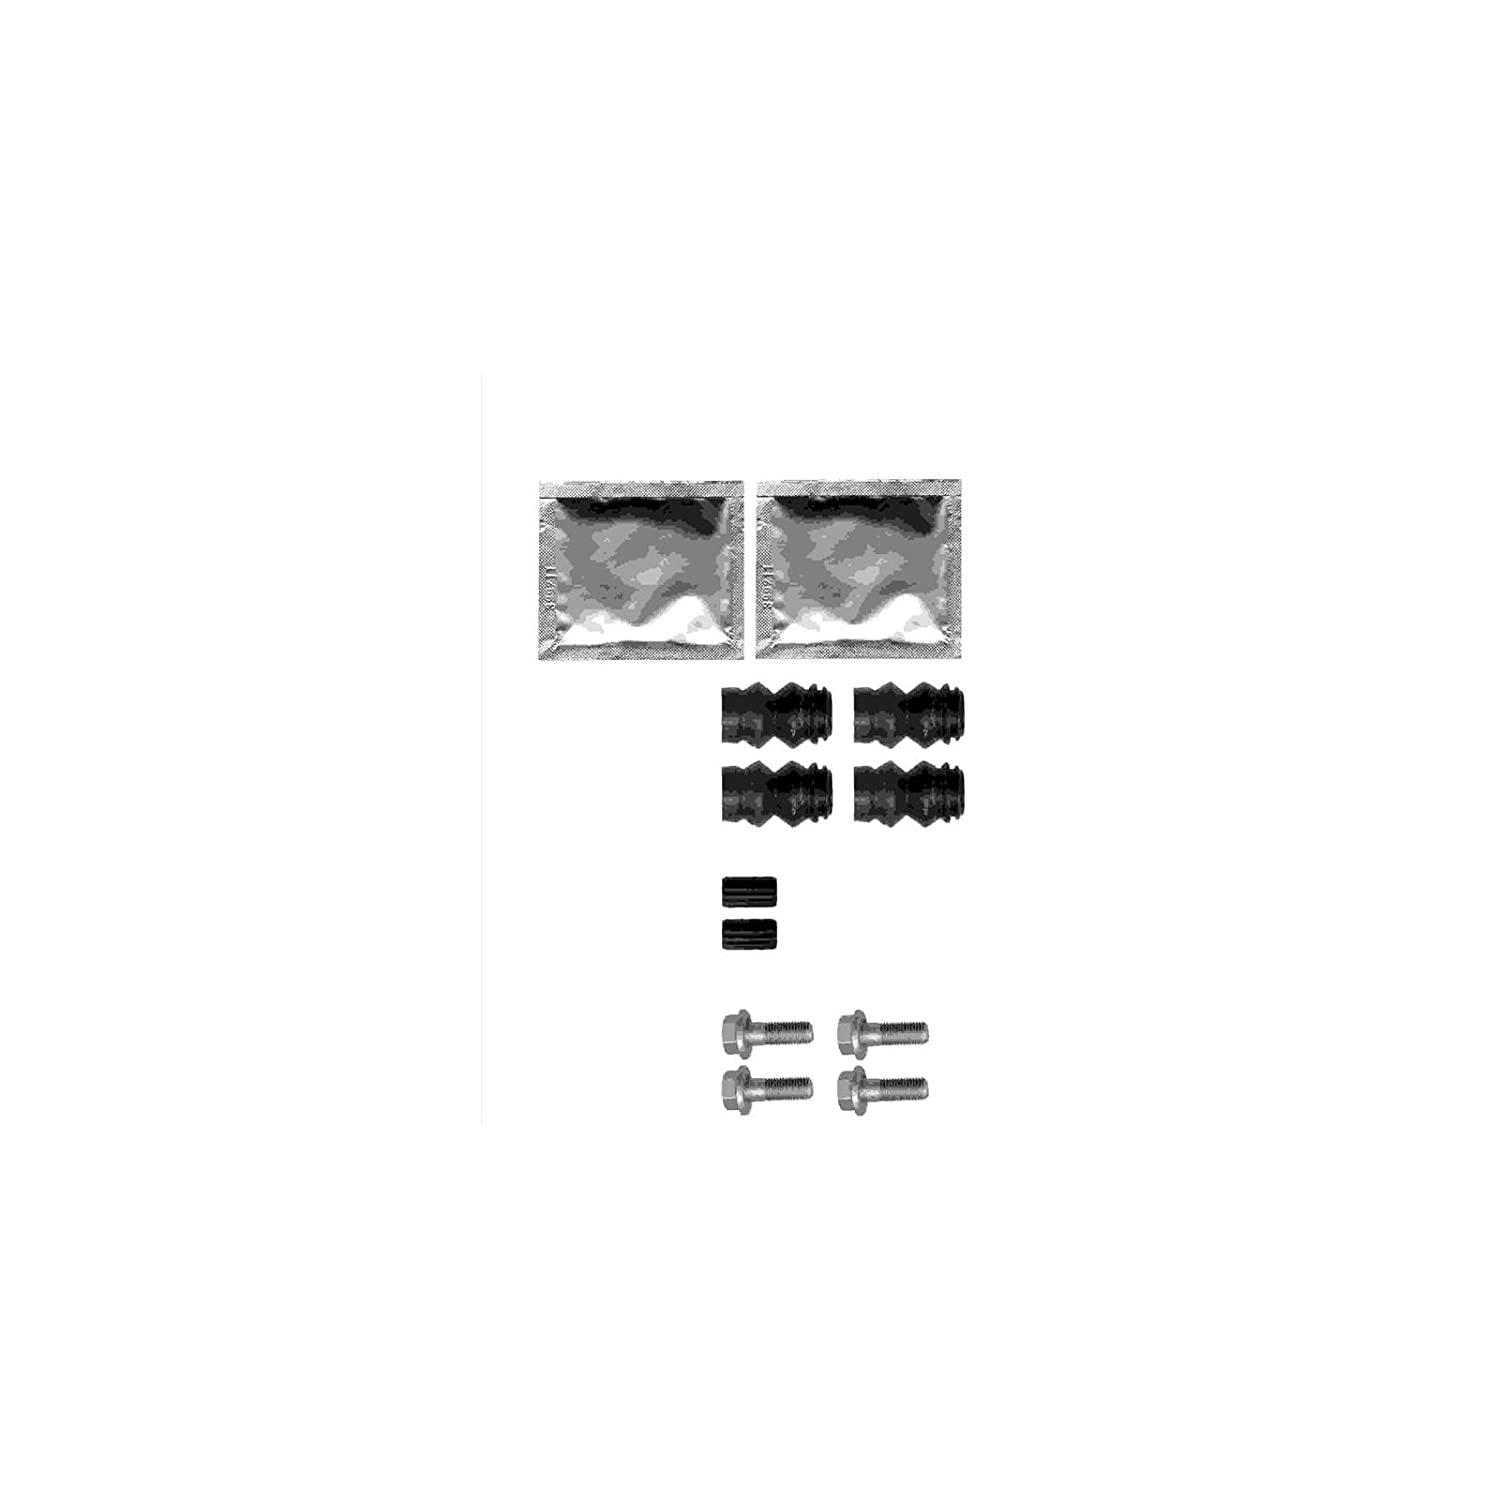 Delphi LX0358 Brake Fitting Kit